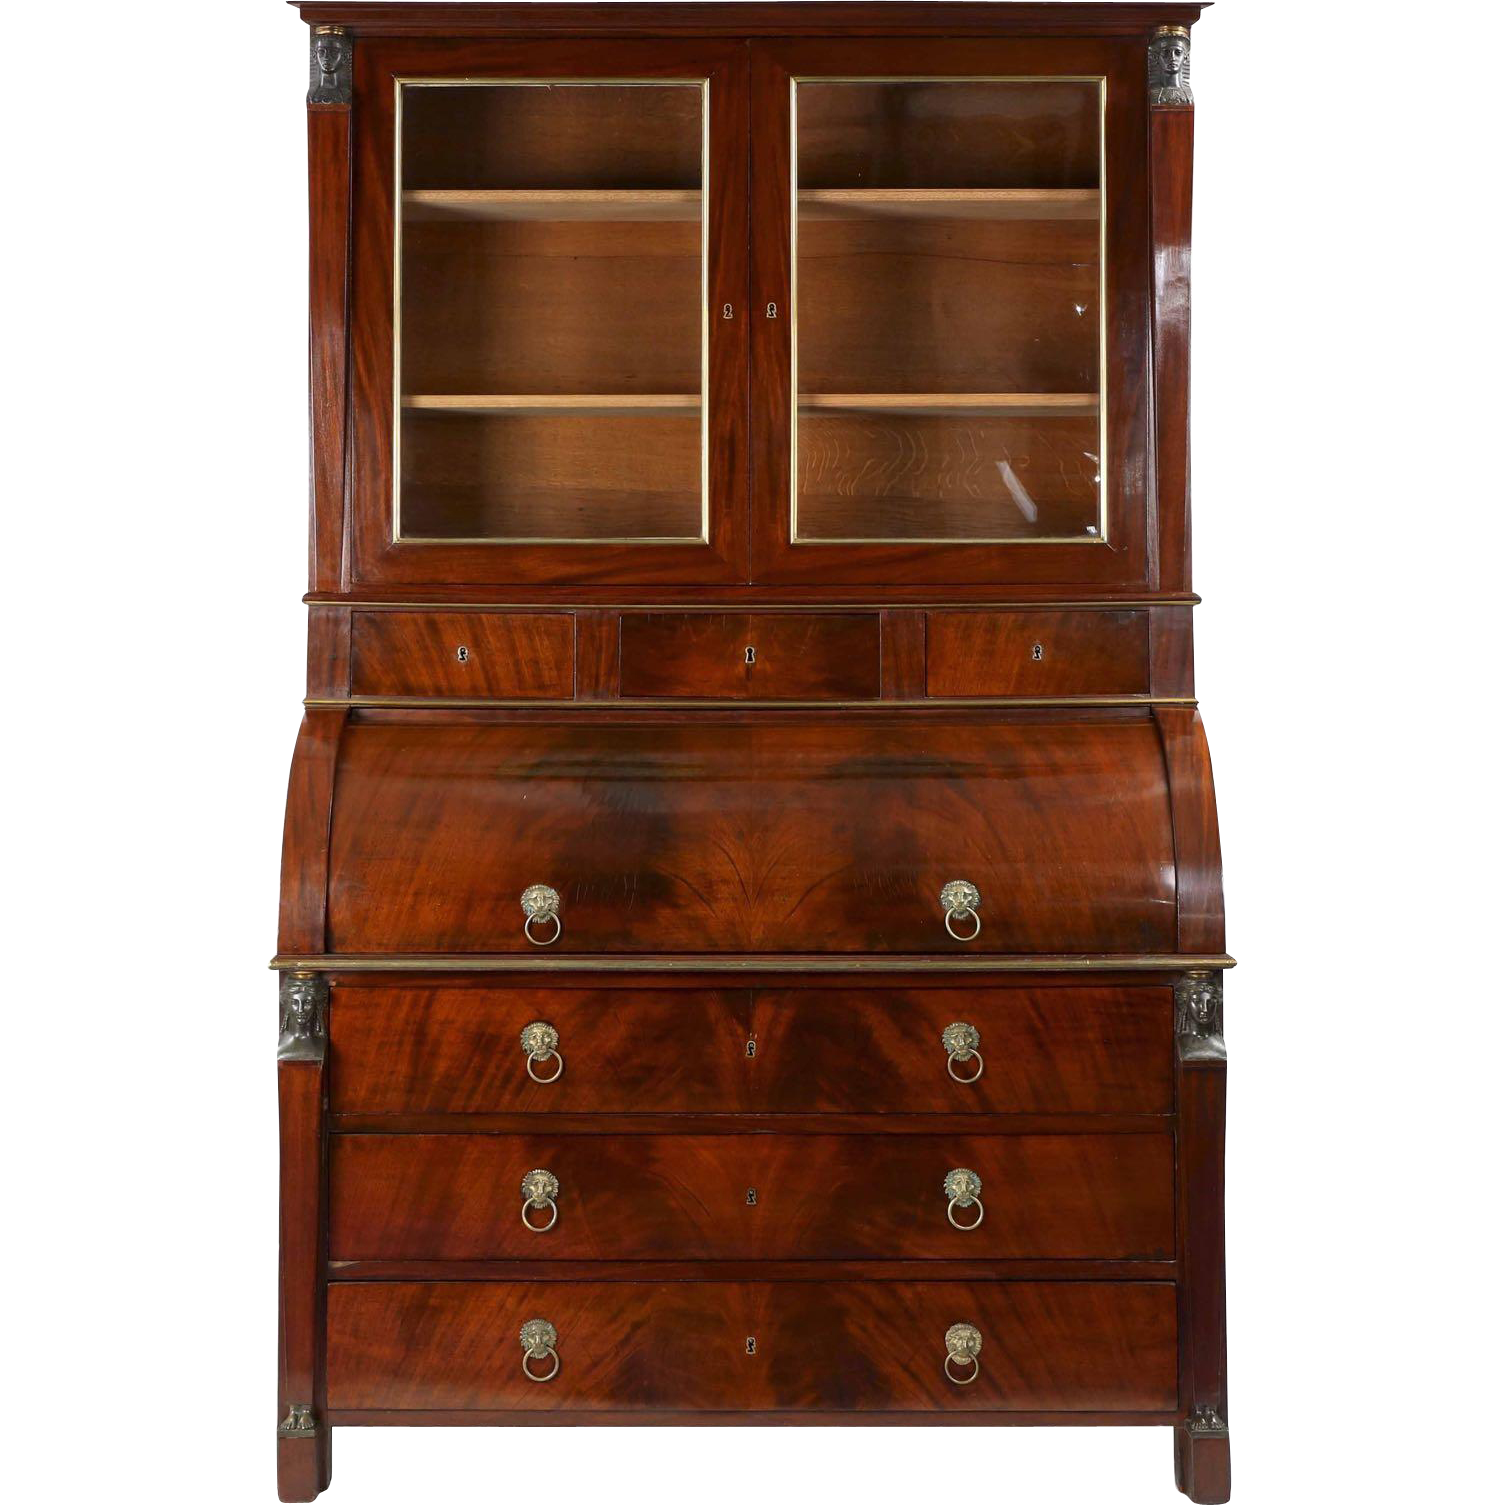 French Empire Antique Secretary Desk by Jean-Joseph Chapuis, Early 19th  Century - French Empire Antique Secretary Desk By Jean-Joseph Chapuis, Early